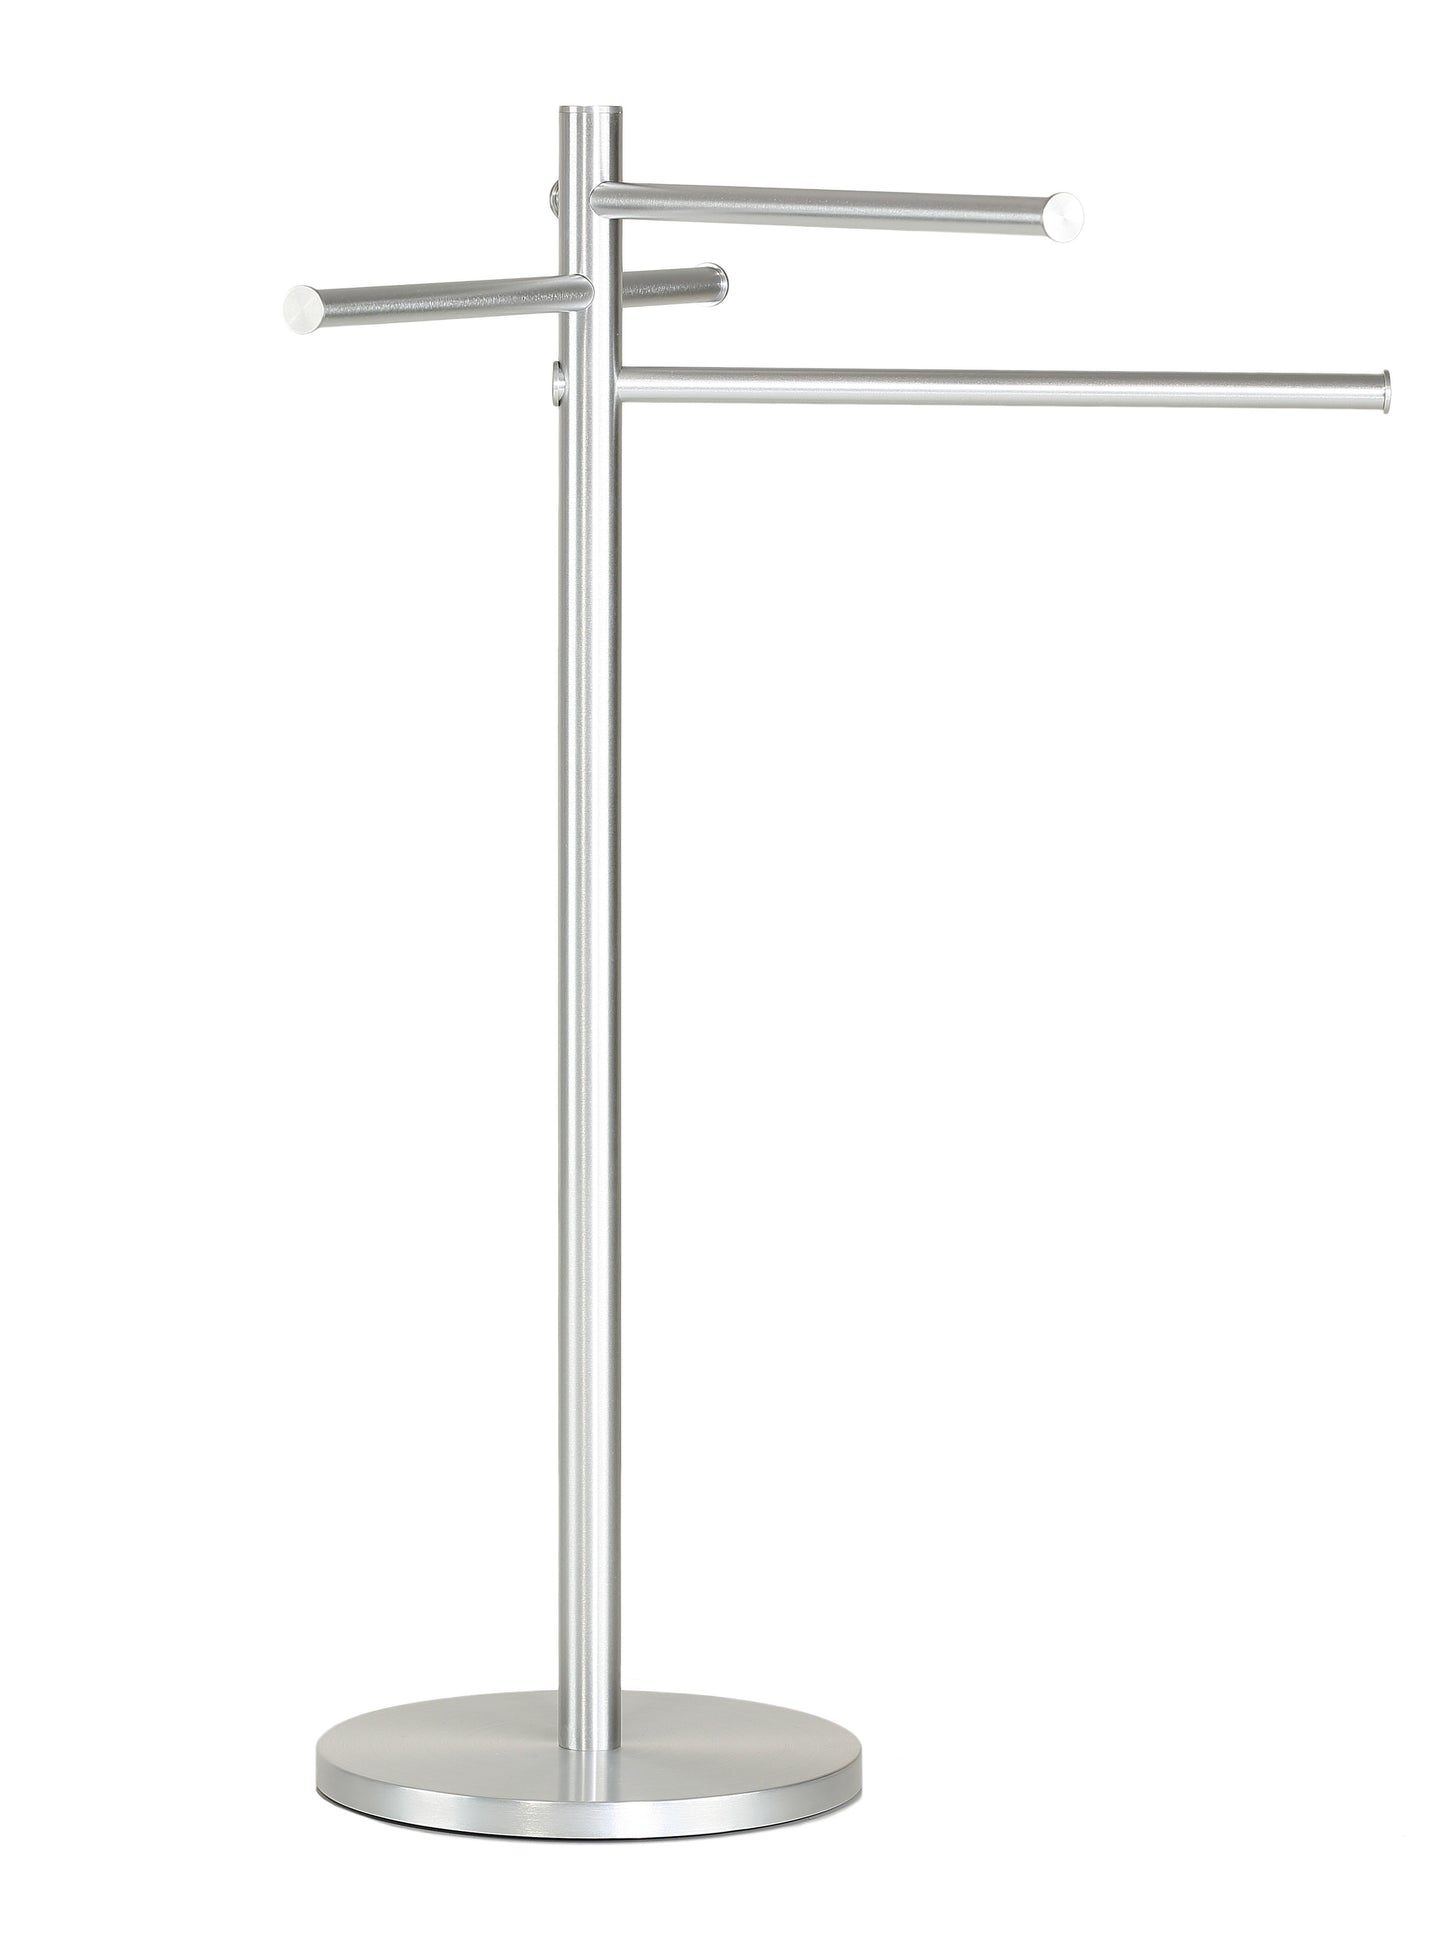 Emmi Contemporary Aluminum Sliding 3 Tier Towel Holder Stand, Brushed